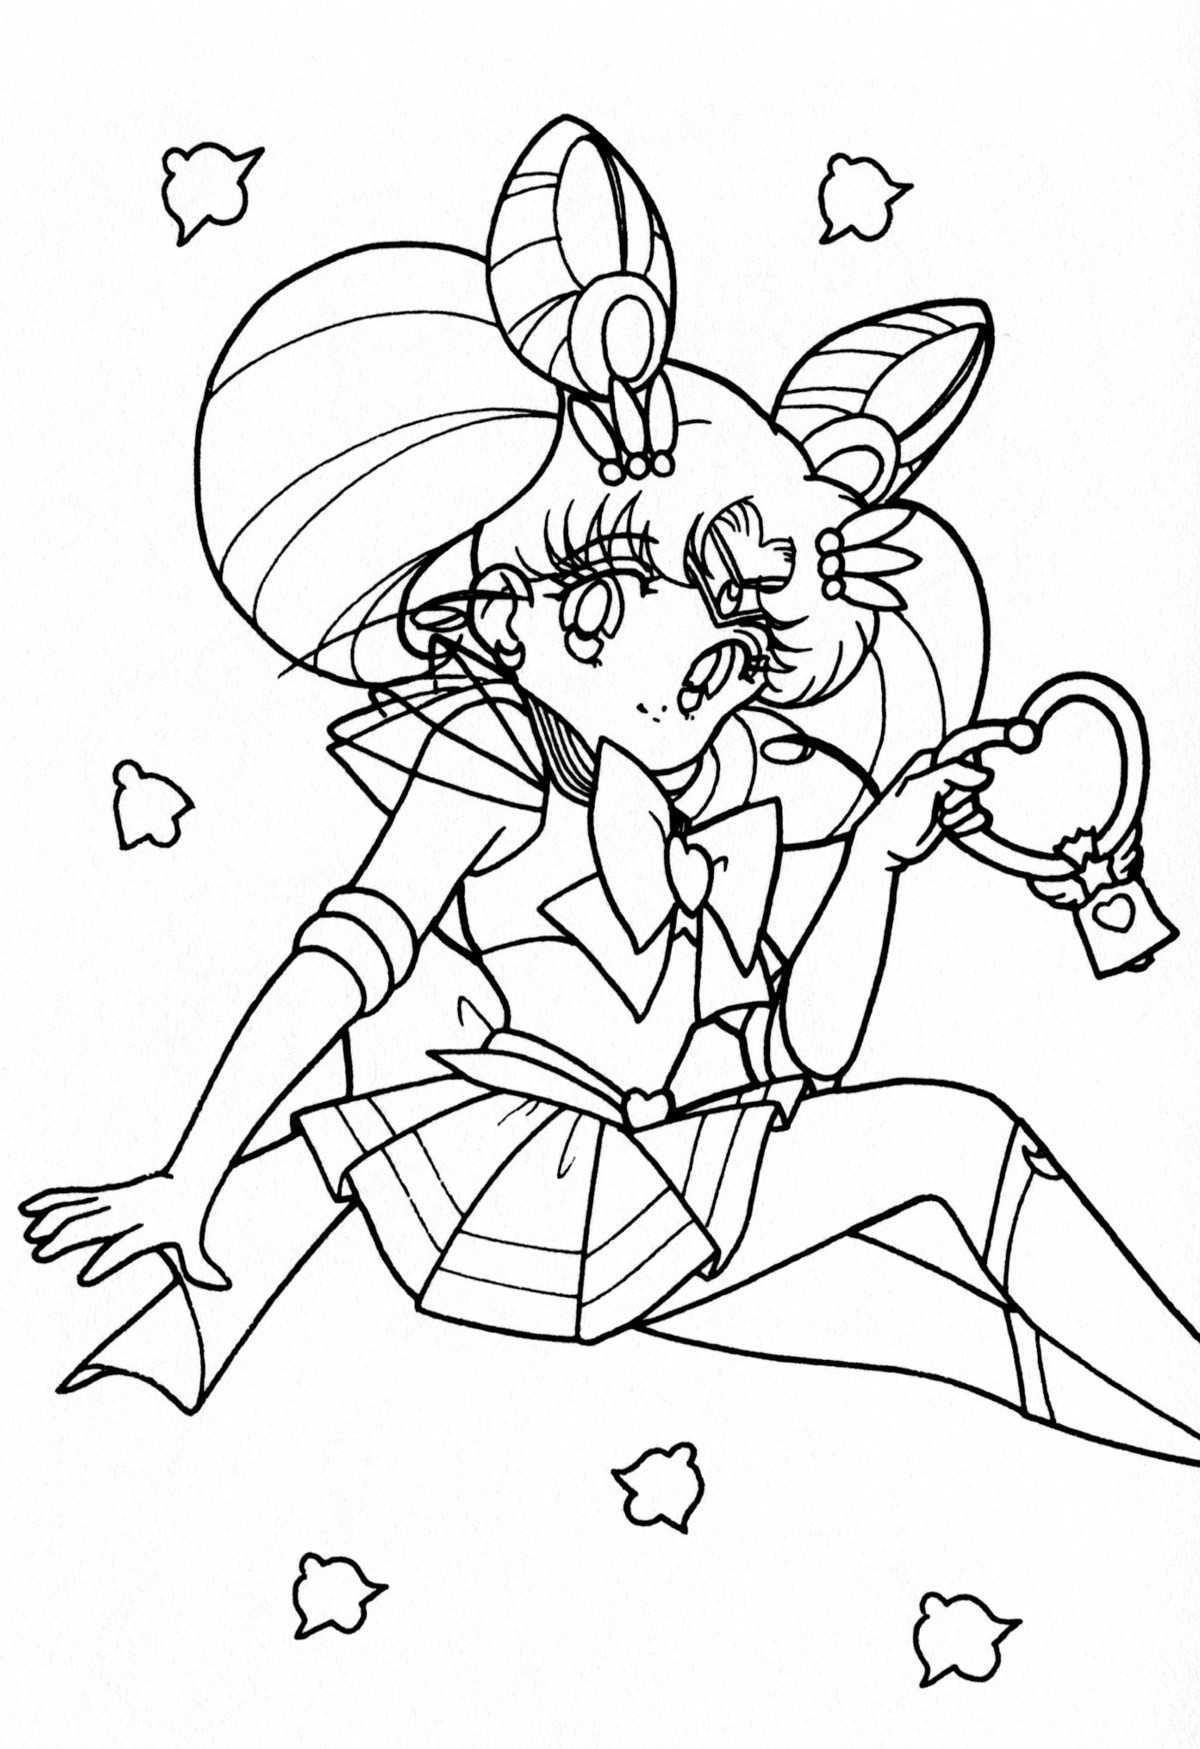 Sailor Moon Coloring Pages Coloring Pages For Sailor Moon Beautiful Tsuki Matsuri The